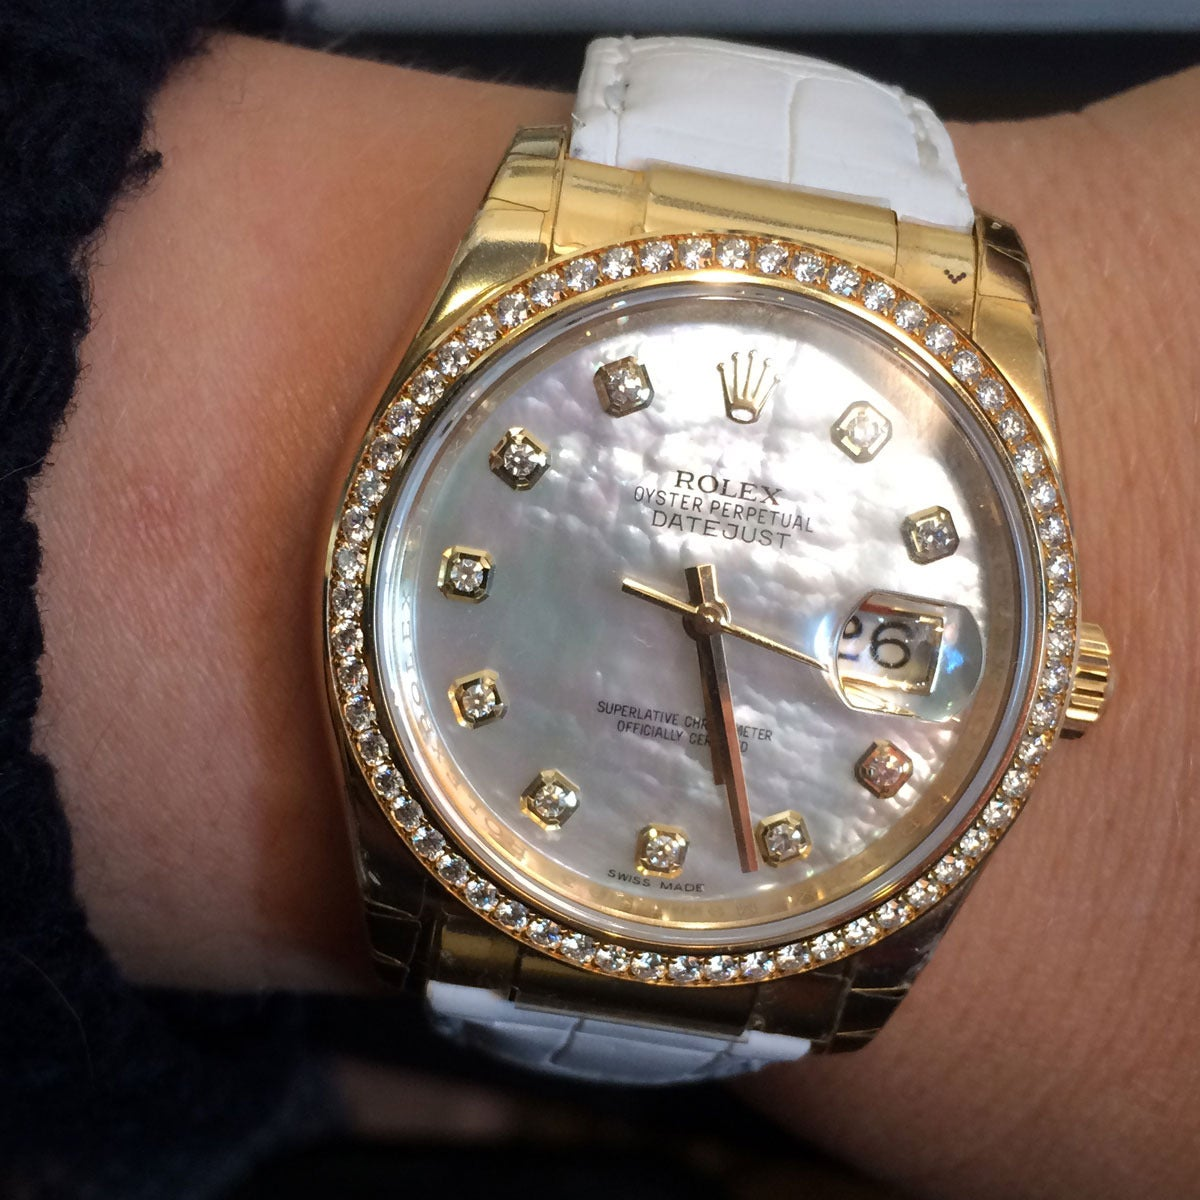 Rolex Yellow Gold Datejust Mother of Pearl Diamond Dial Wristwatch Ref 116188 For Sale 5